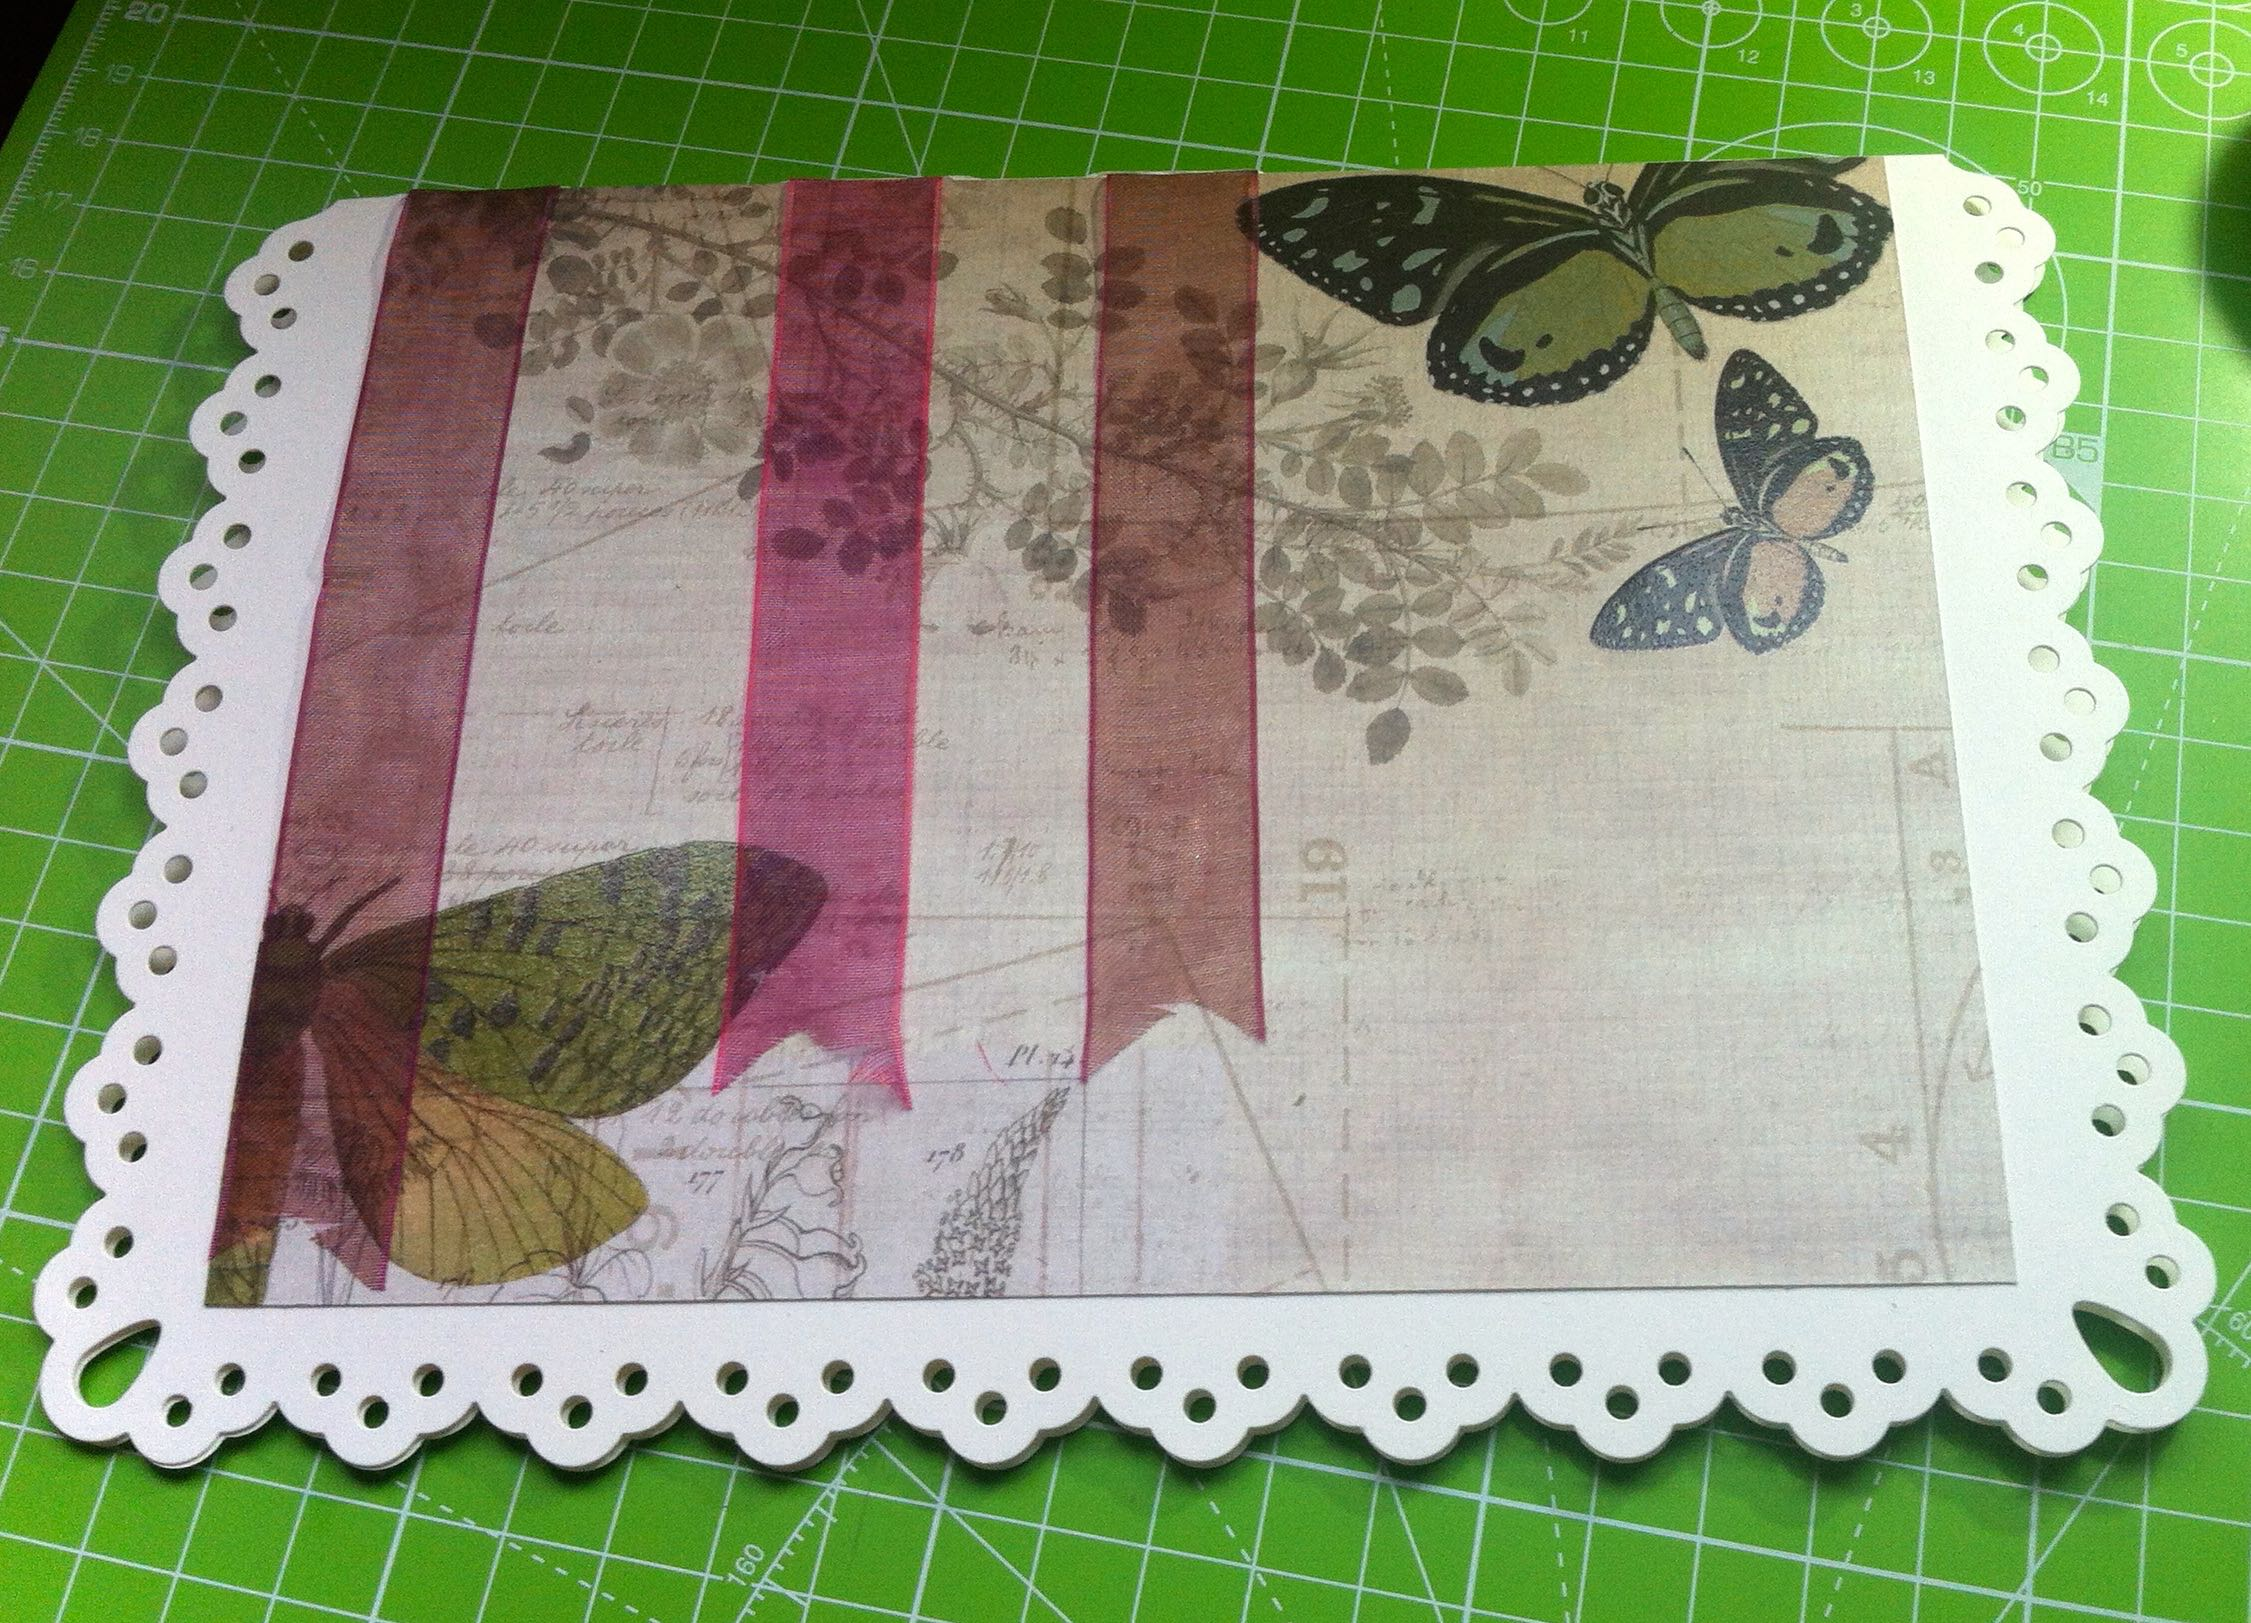 laying out the front of my card, adding scrapbook paper gave it more depth and interest